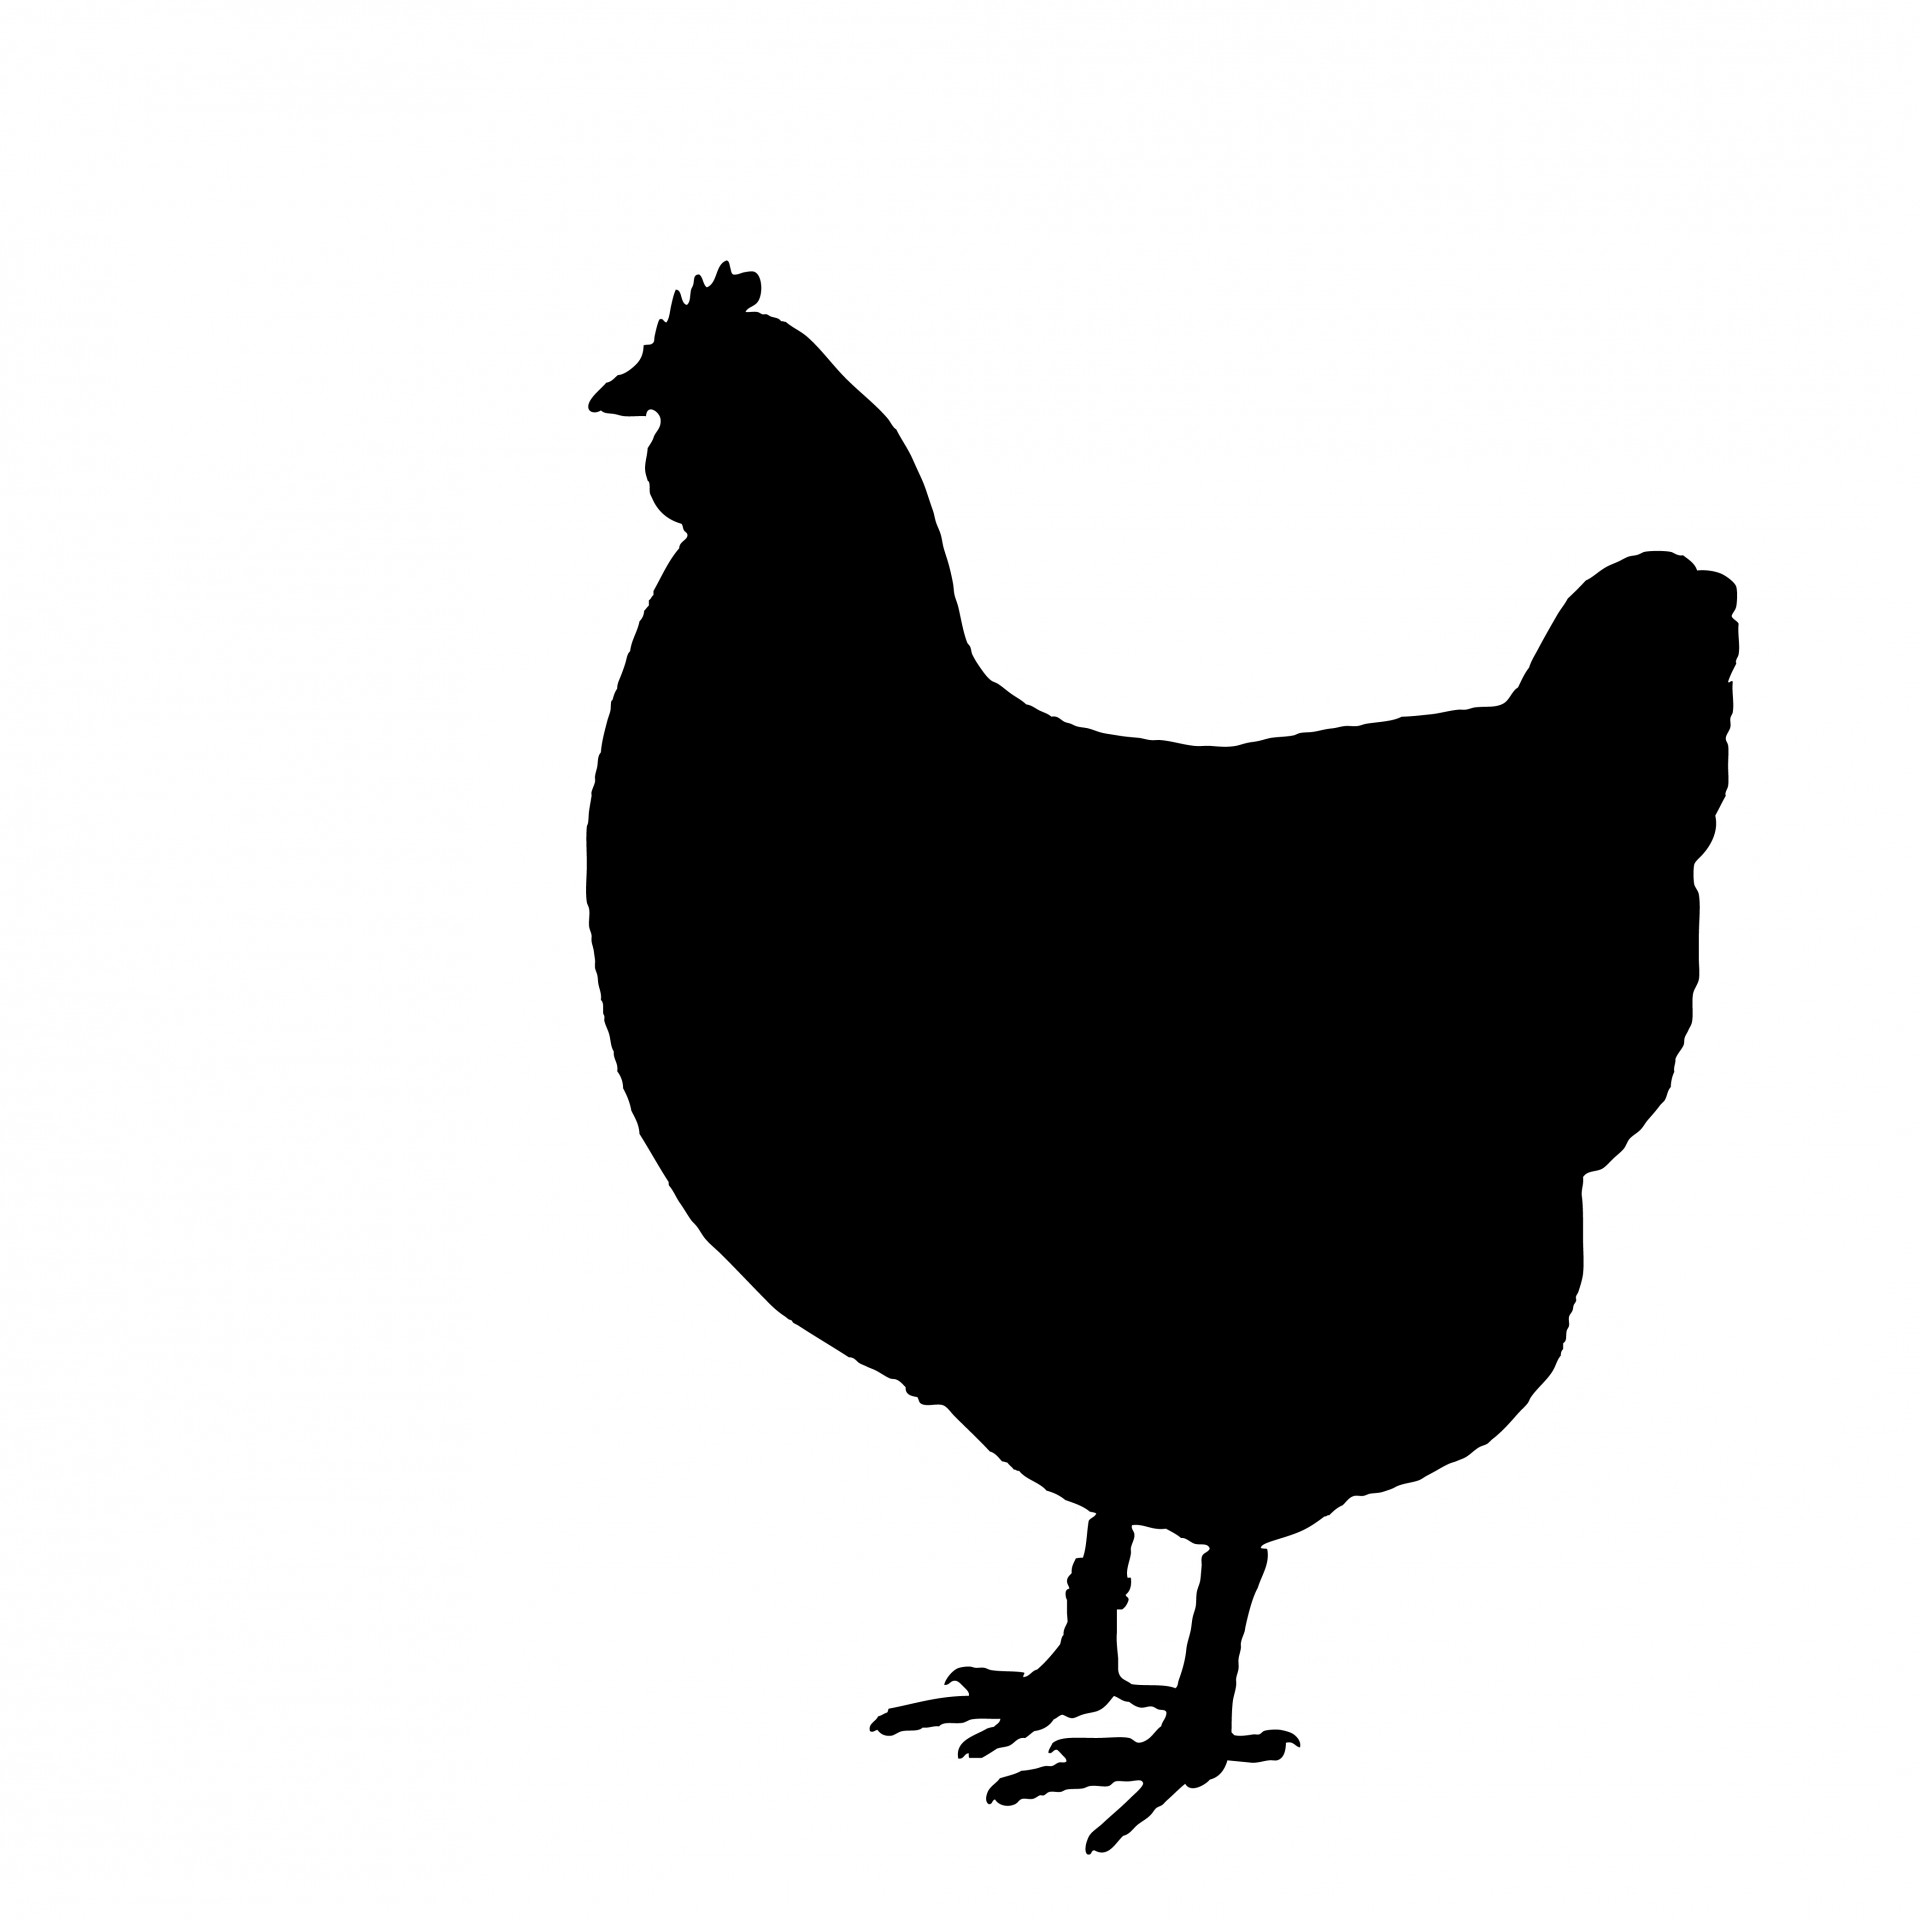 With clipart silhouette. Chicken free stock photo